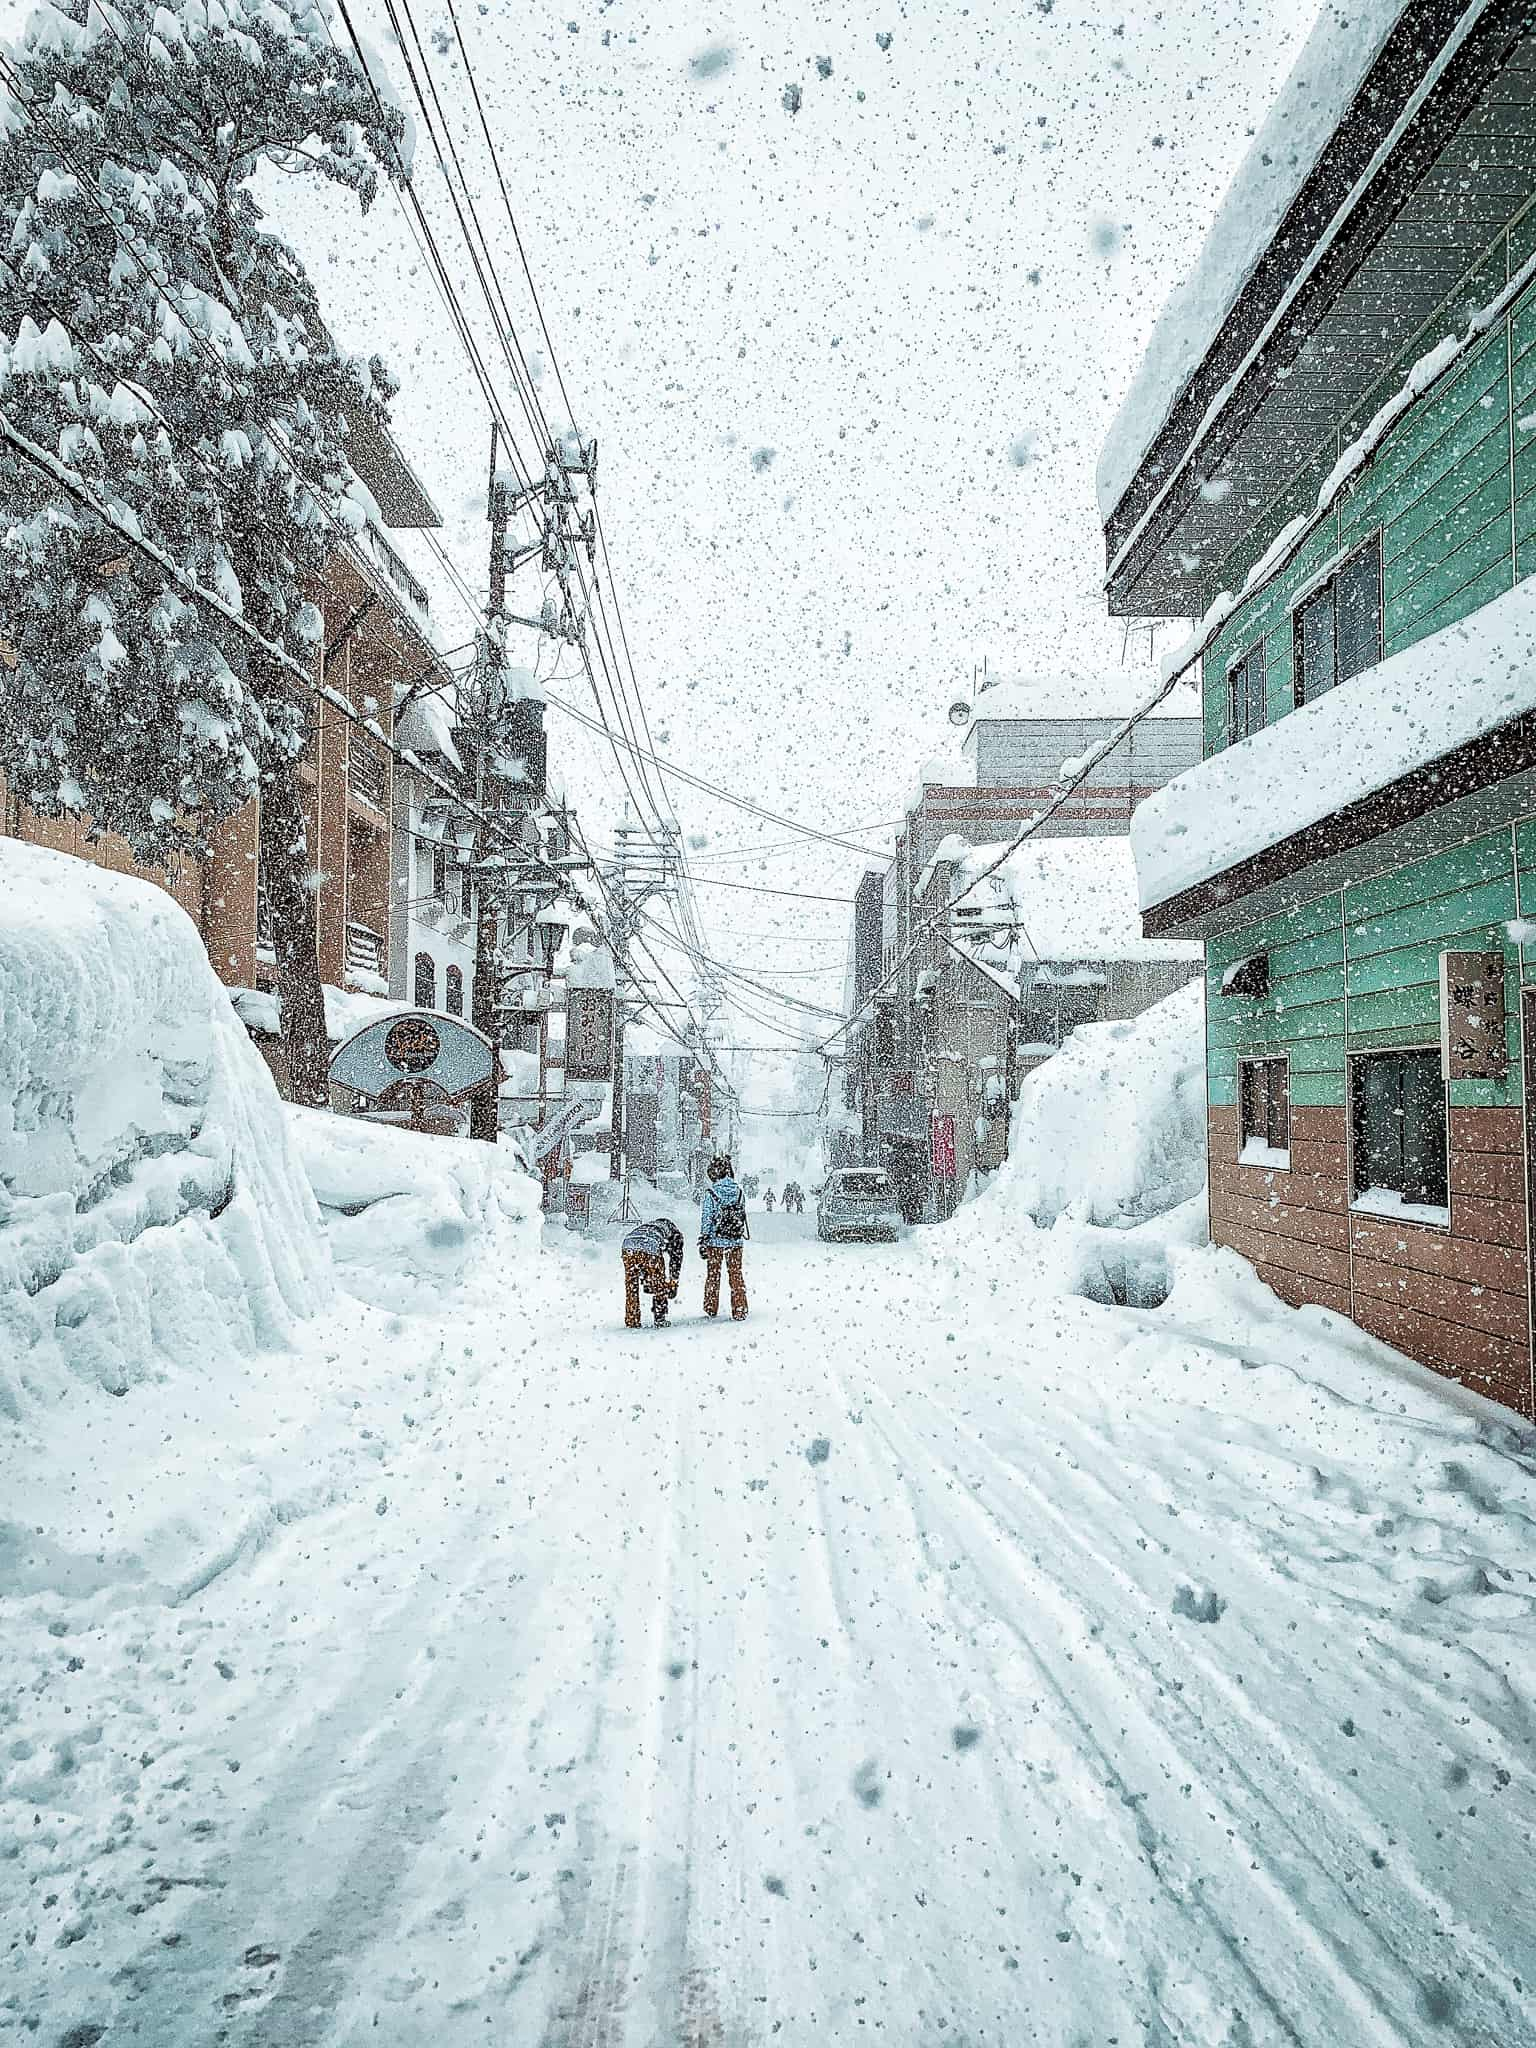 snowing hard in Myoko during powder culture tour with First Tours